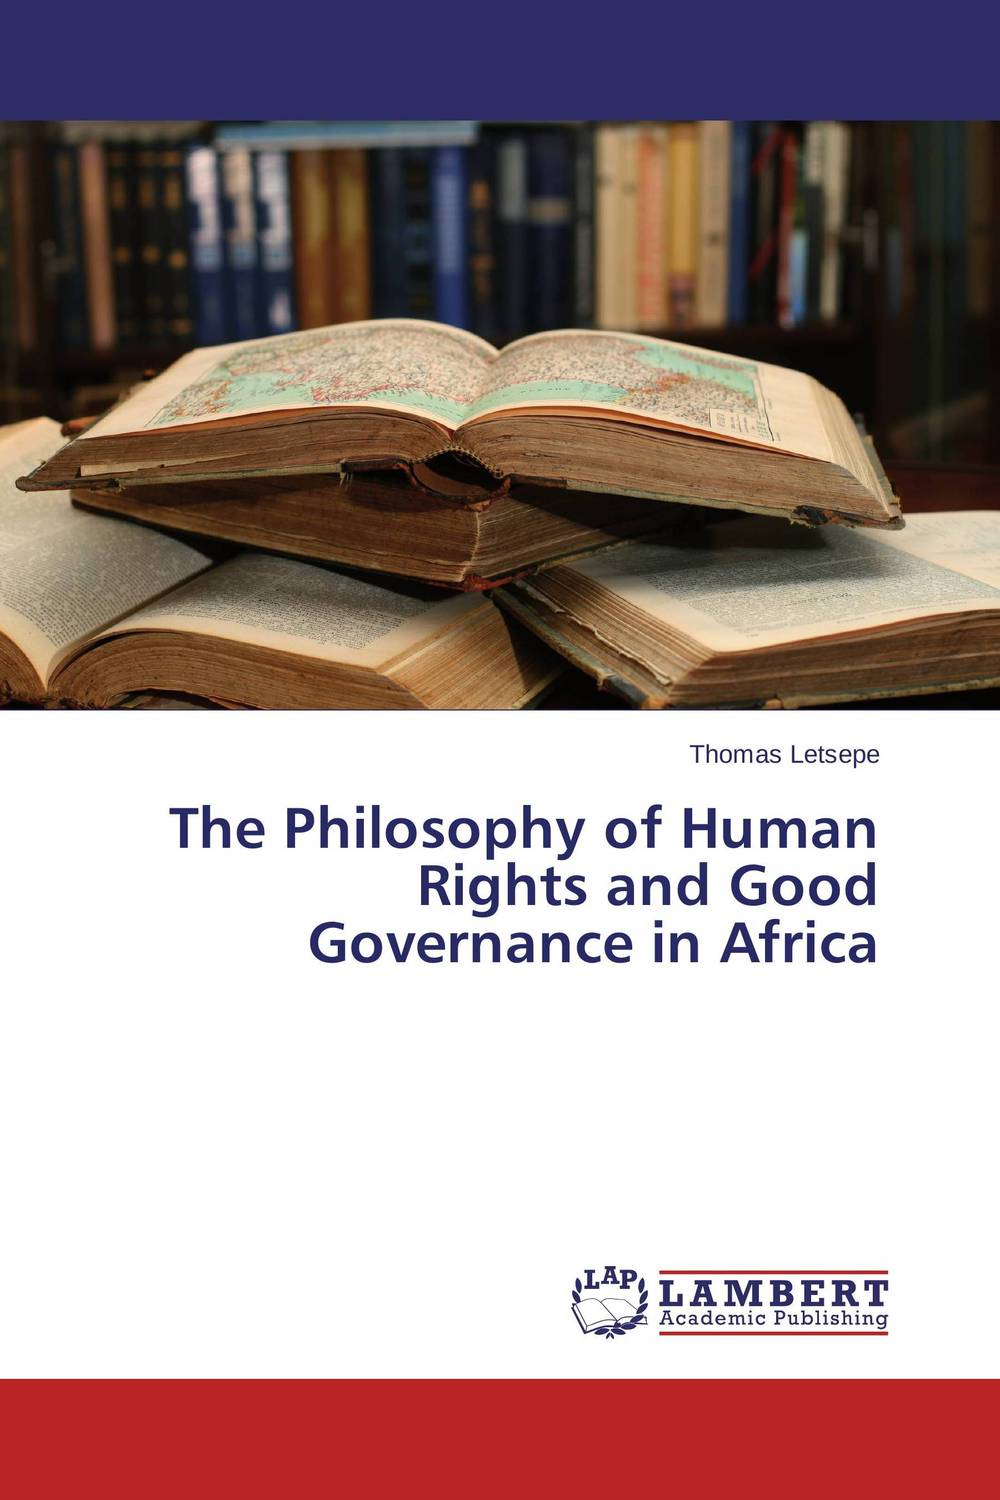 The Philosophy of Human Rights and Good Governance in Africa